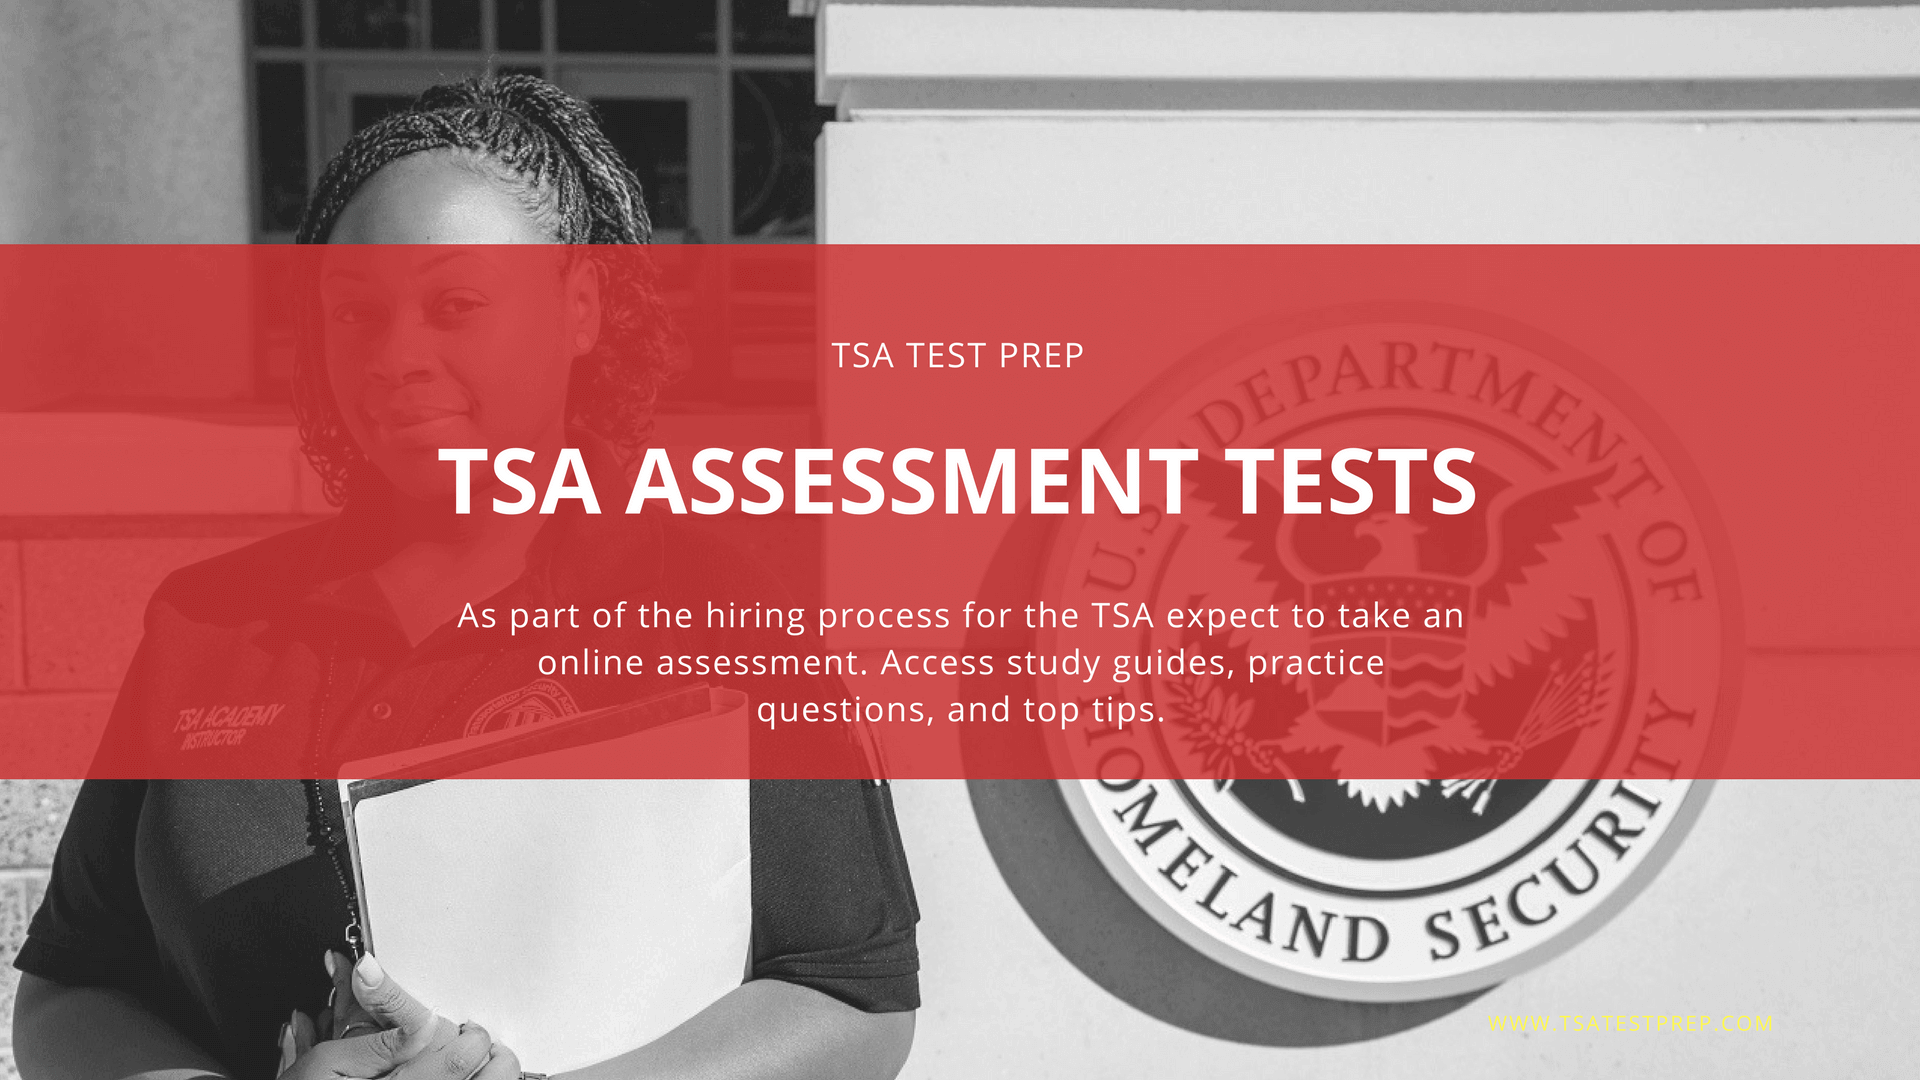 TSA, FAM, TSO Assessment Tests